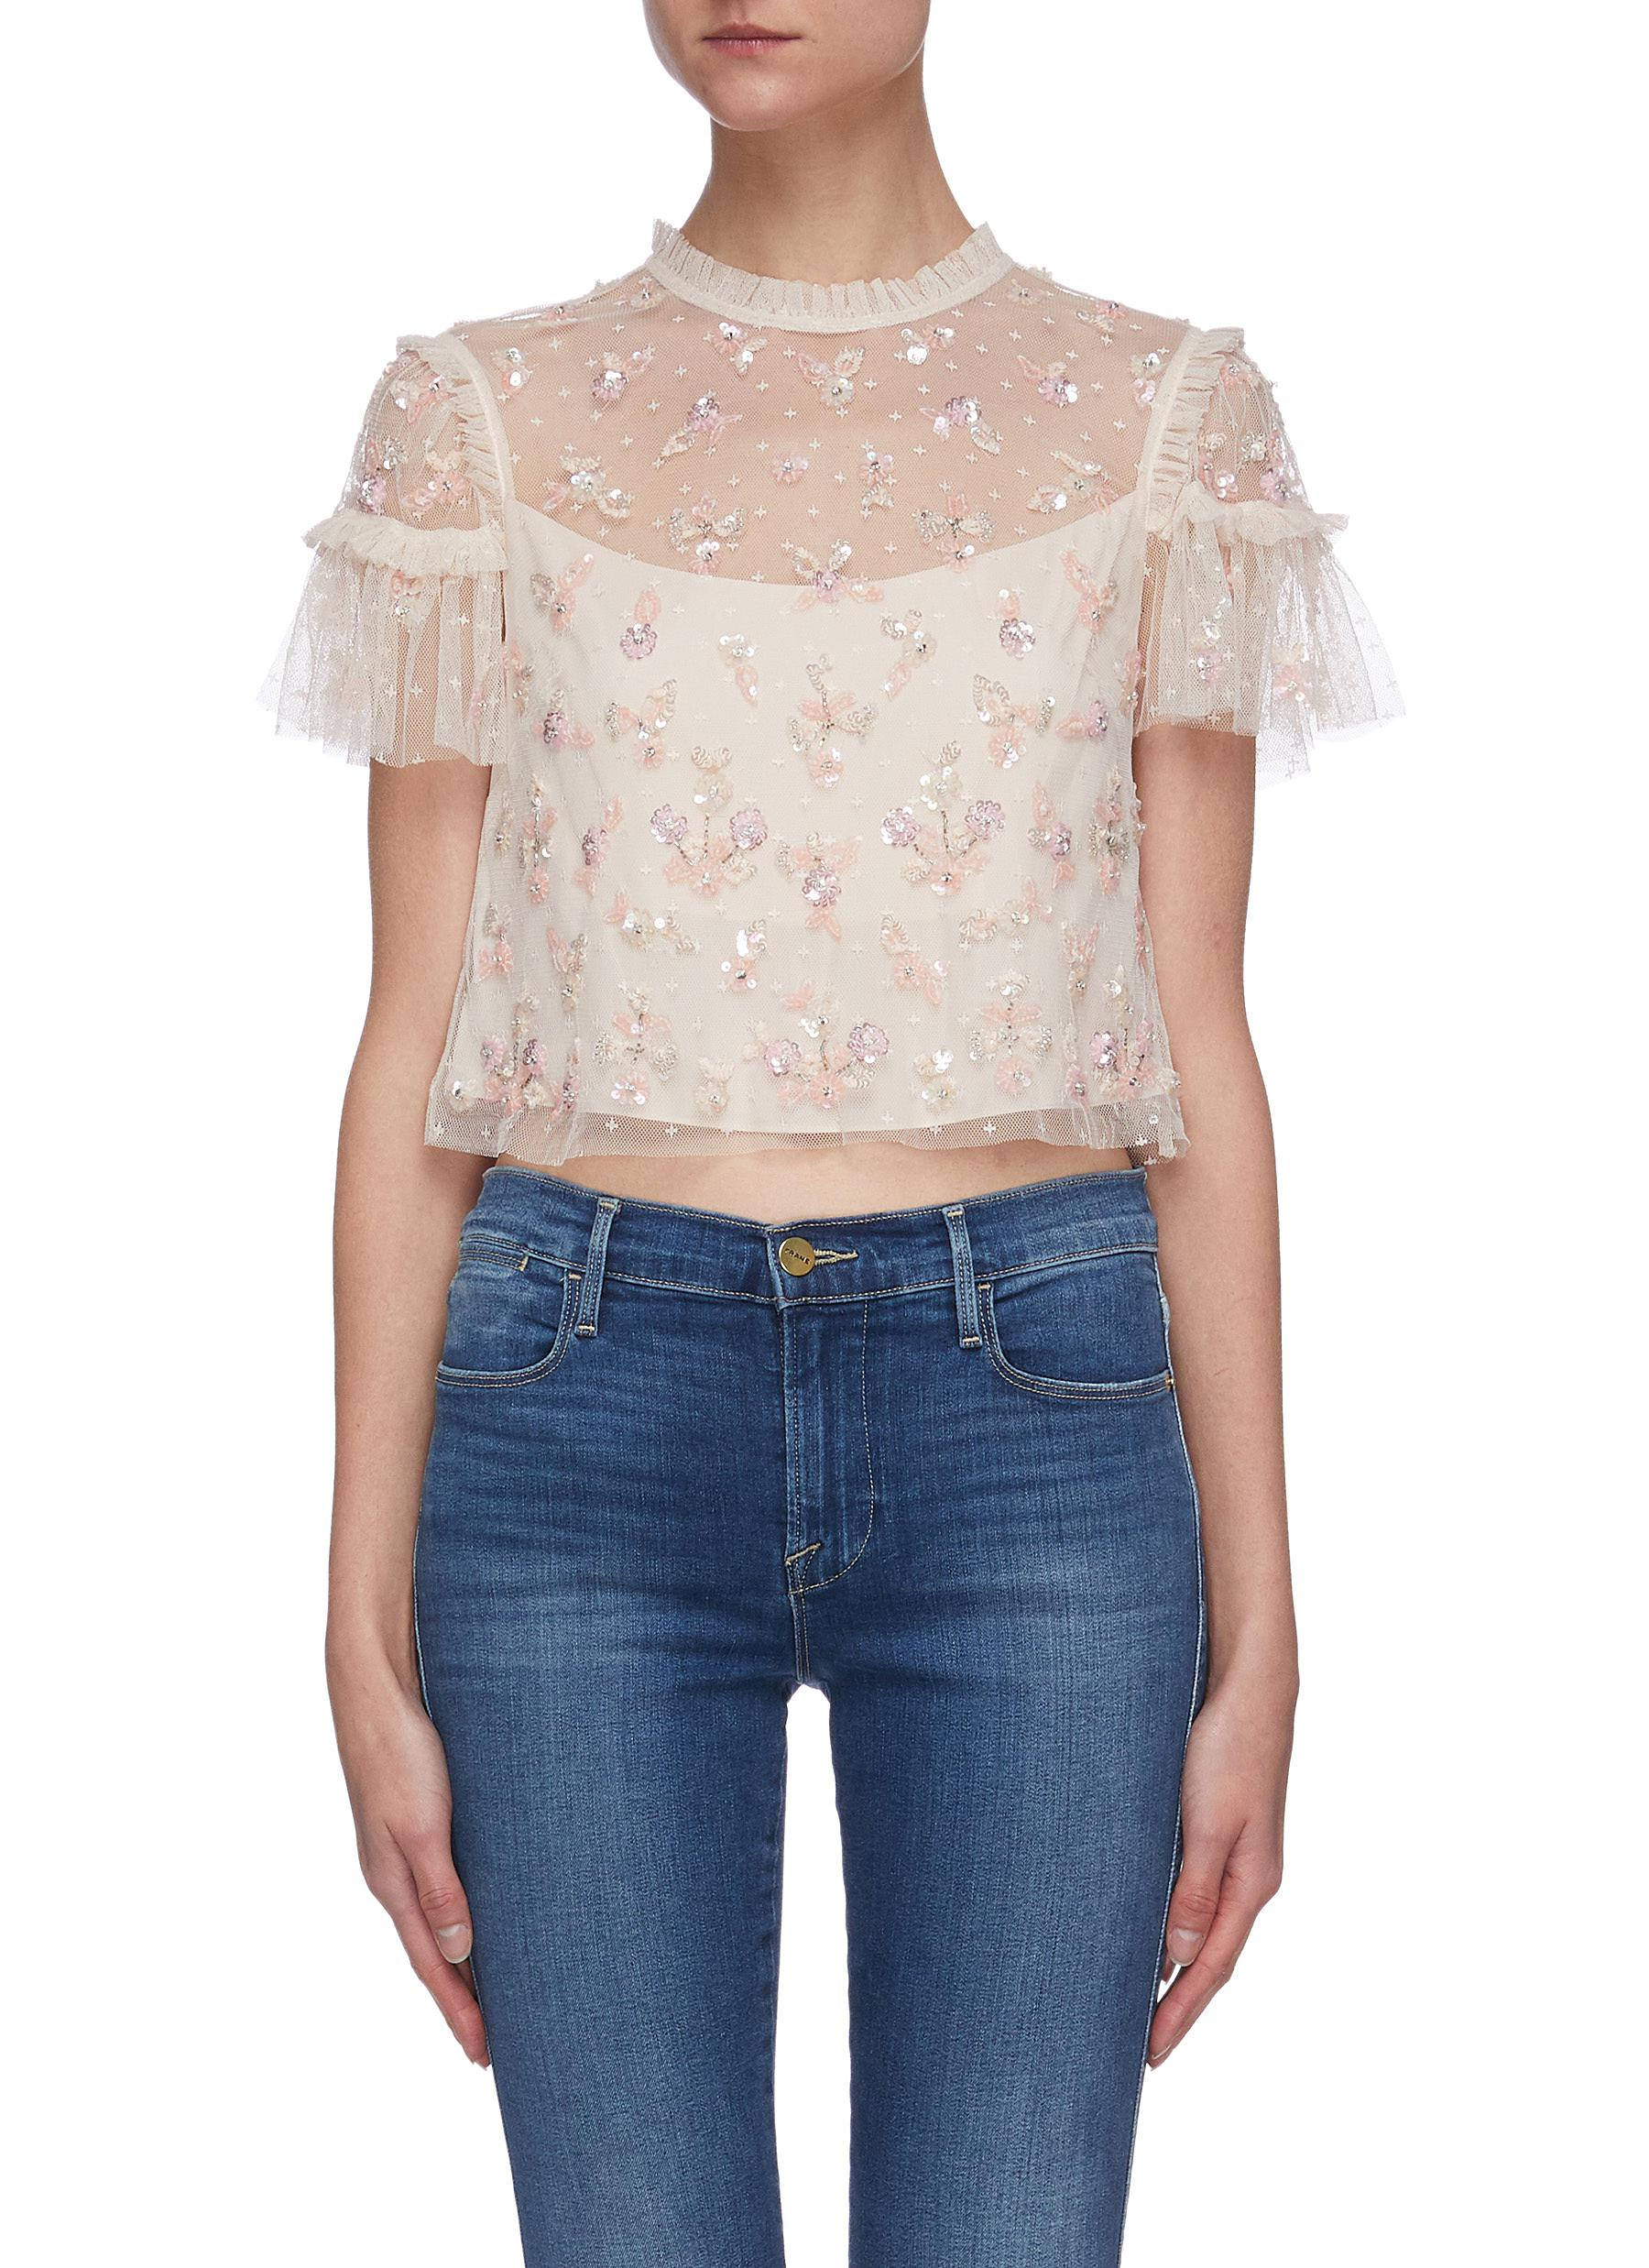 Penelope sequin embellished short sleeve crop tulle top - NEEDLE & THREAD - Modalova